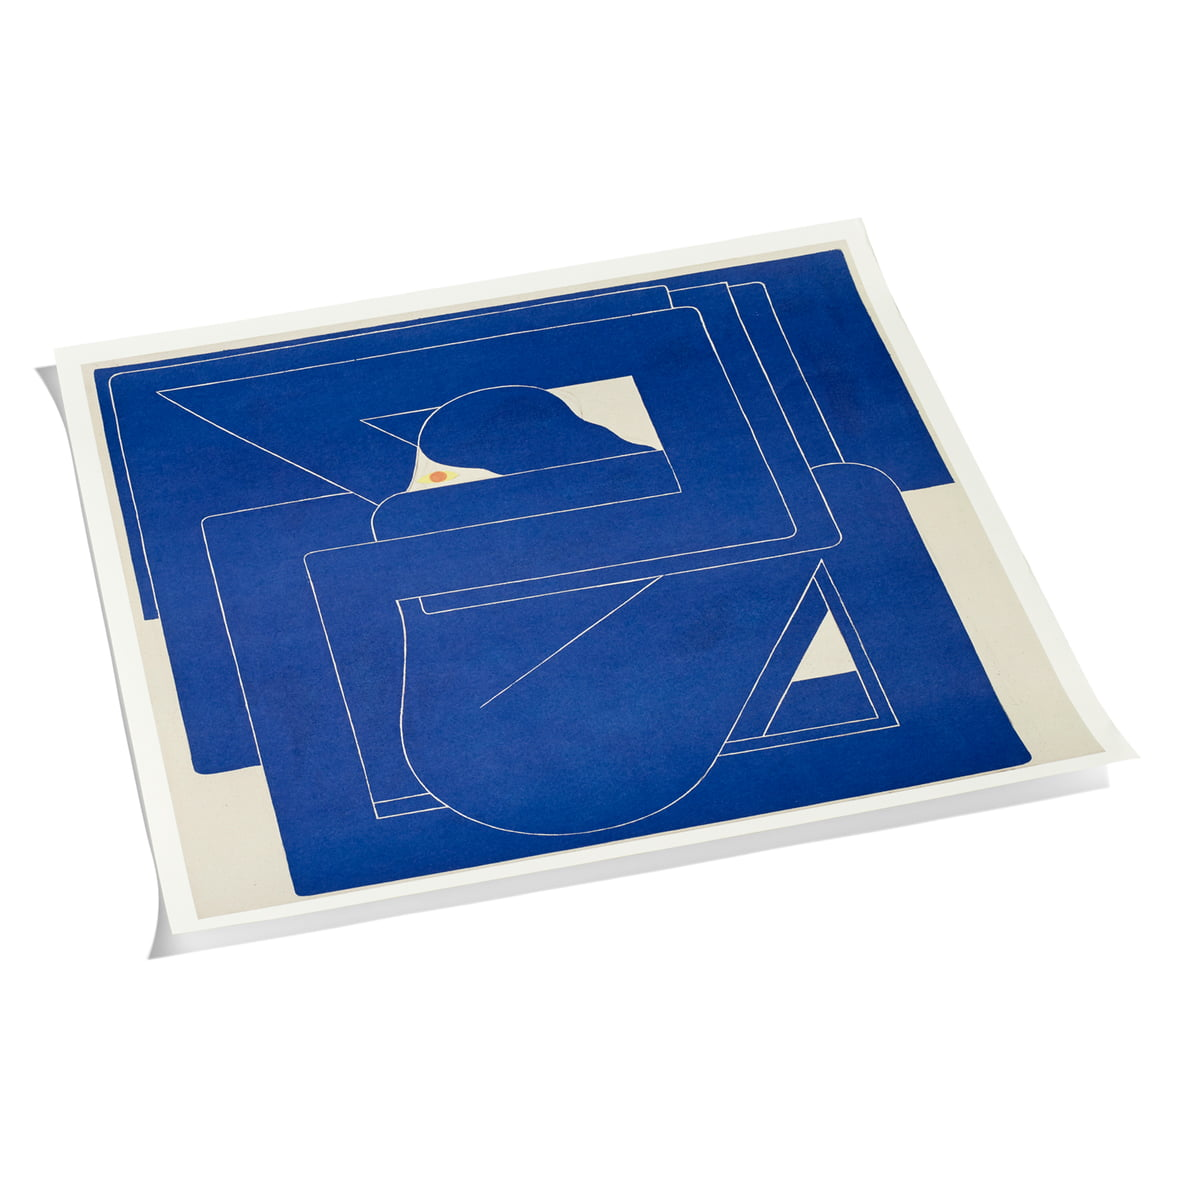 Hay Square By Richard Colman Poster 70 X 70 Cm Blau